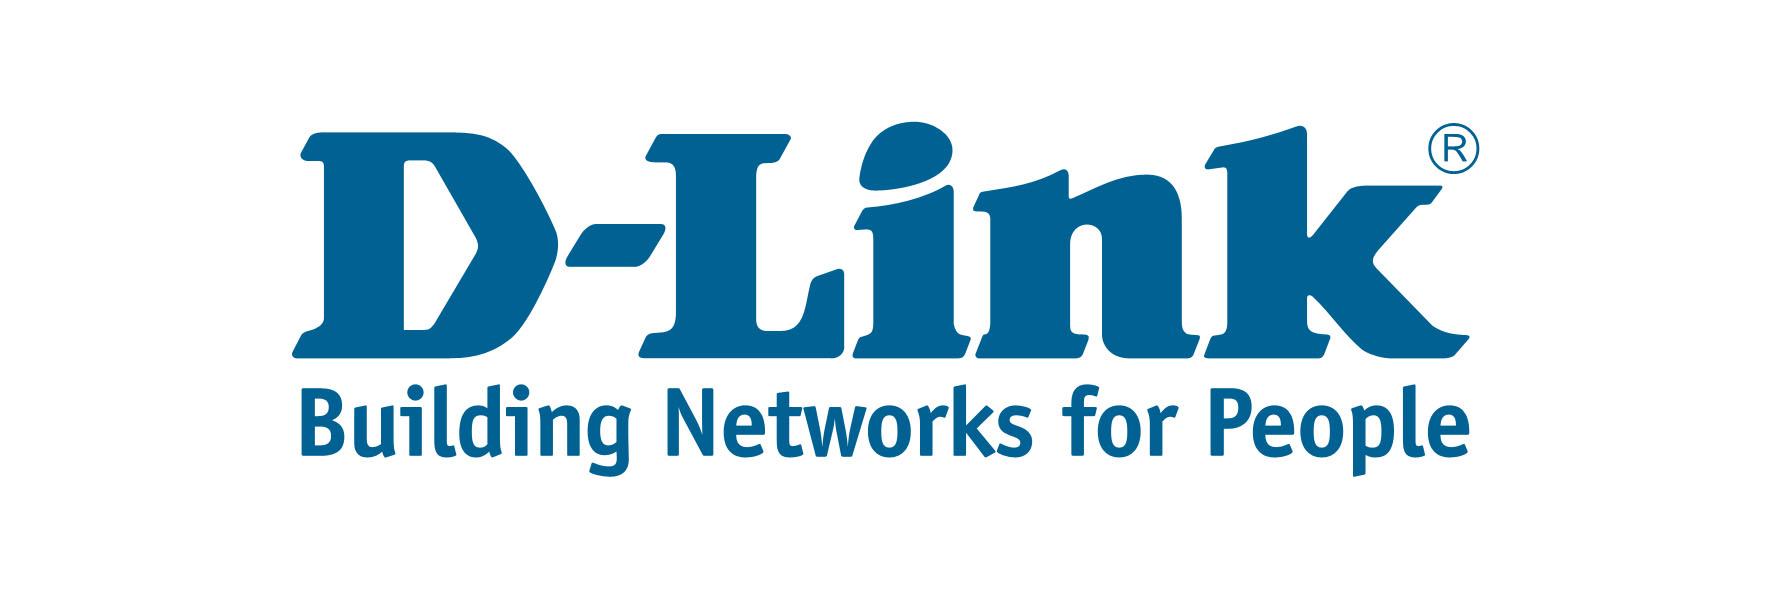 D-link early on certification program of BBF | TR-069 Central